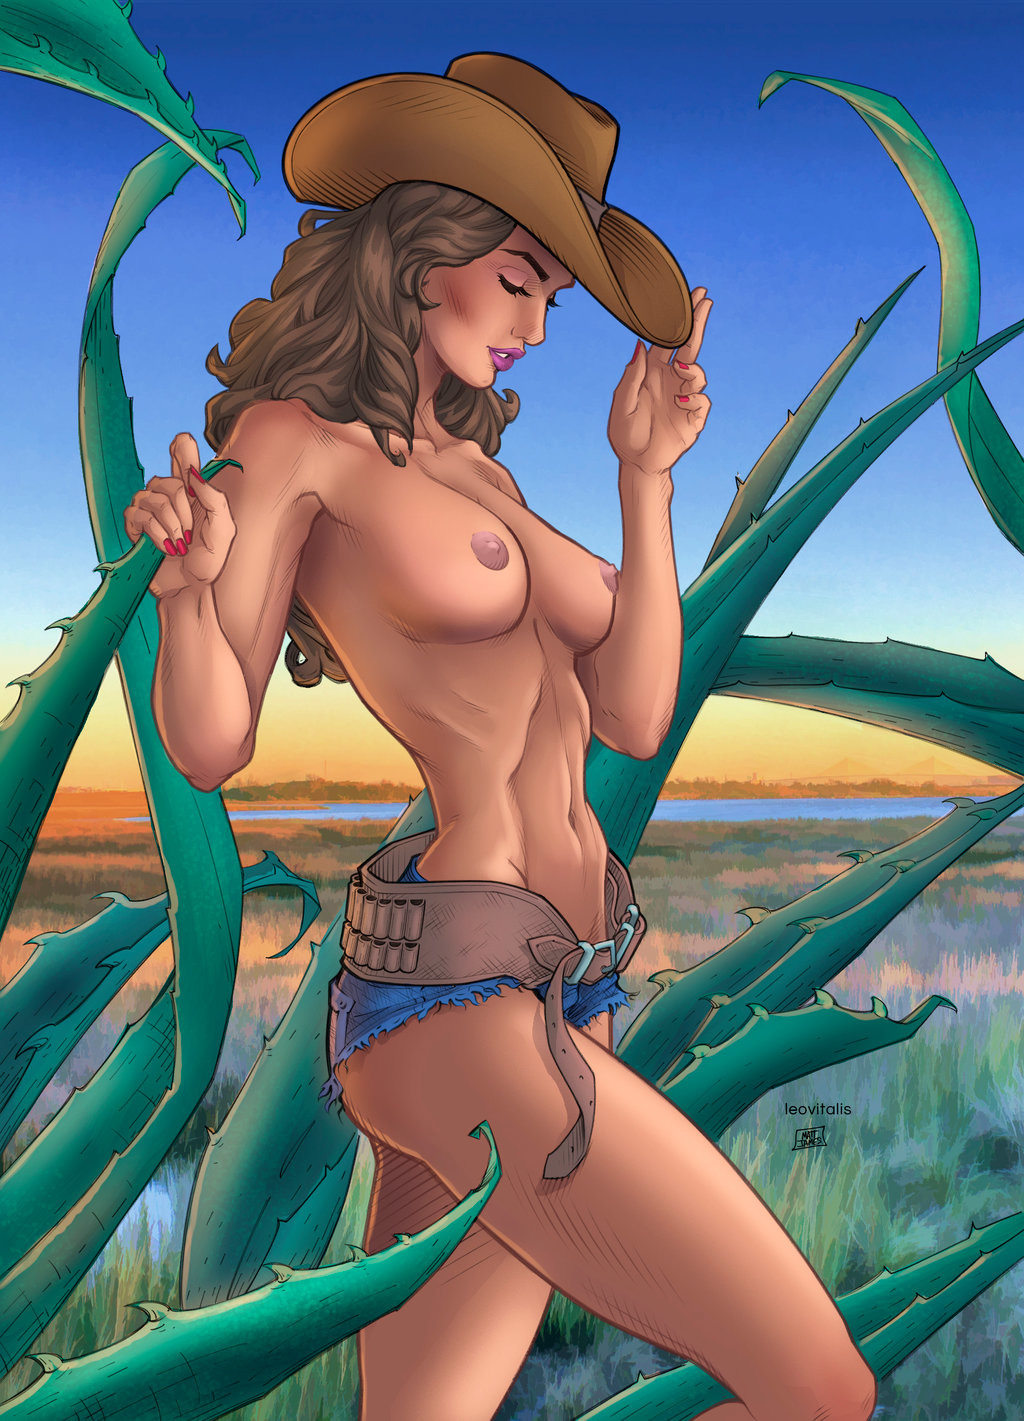 Matt james texas girl by snakebitartstudio db9sm4b